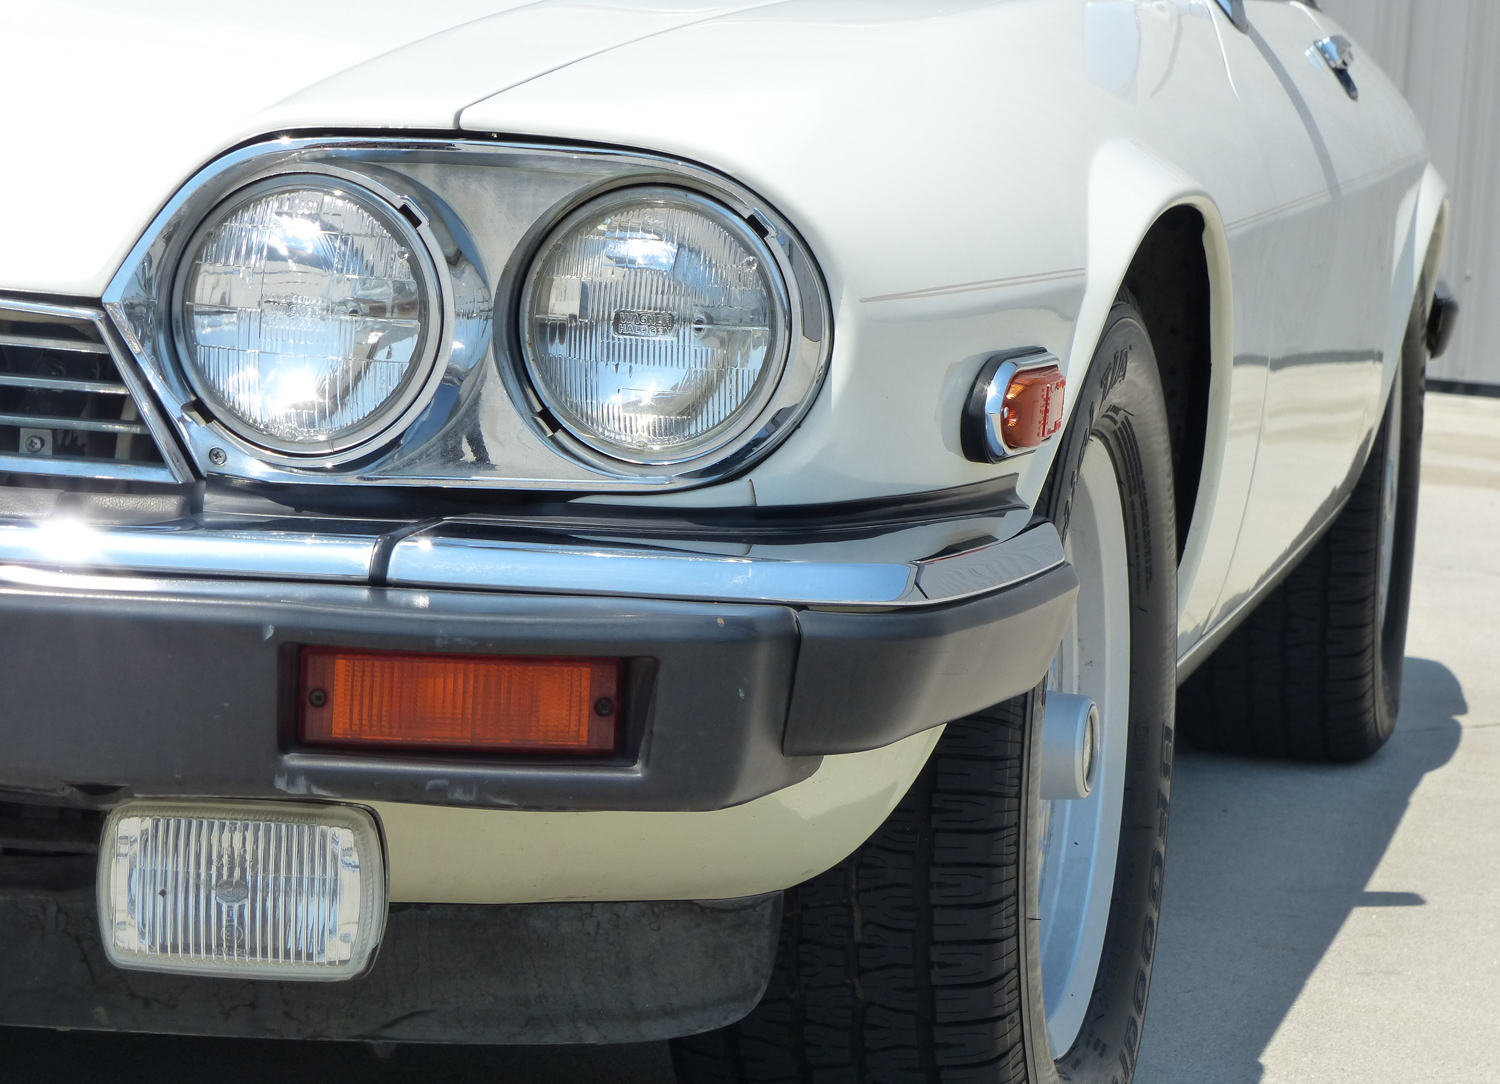 1990 Jaguar XJ-S headlight details